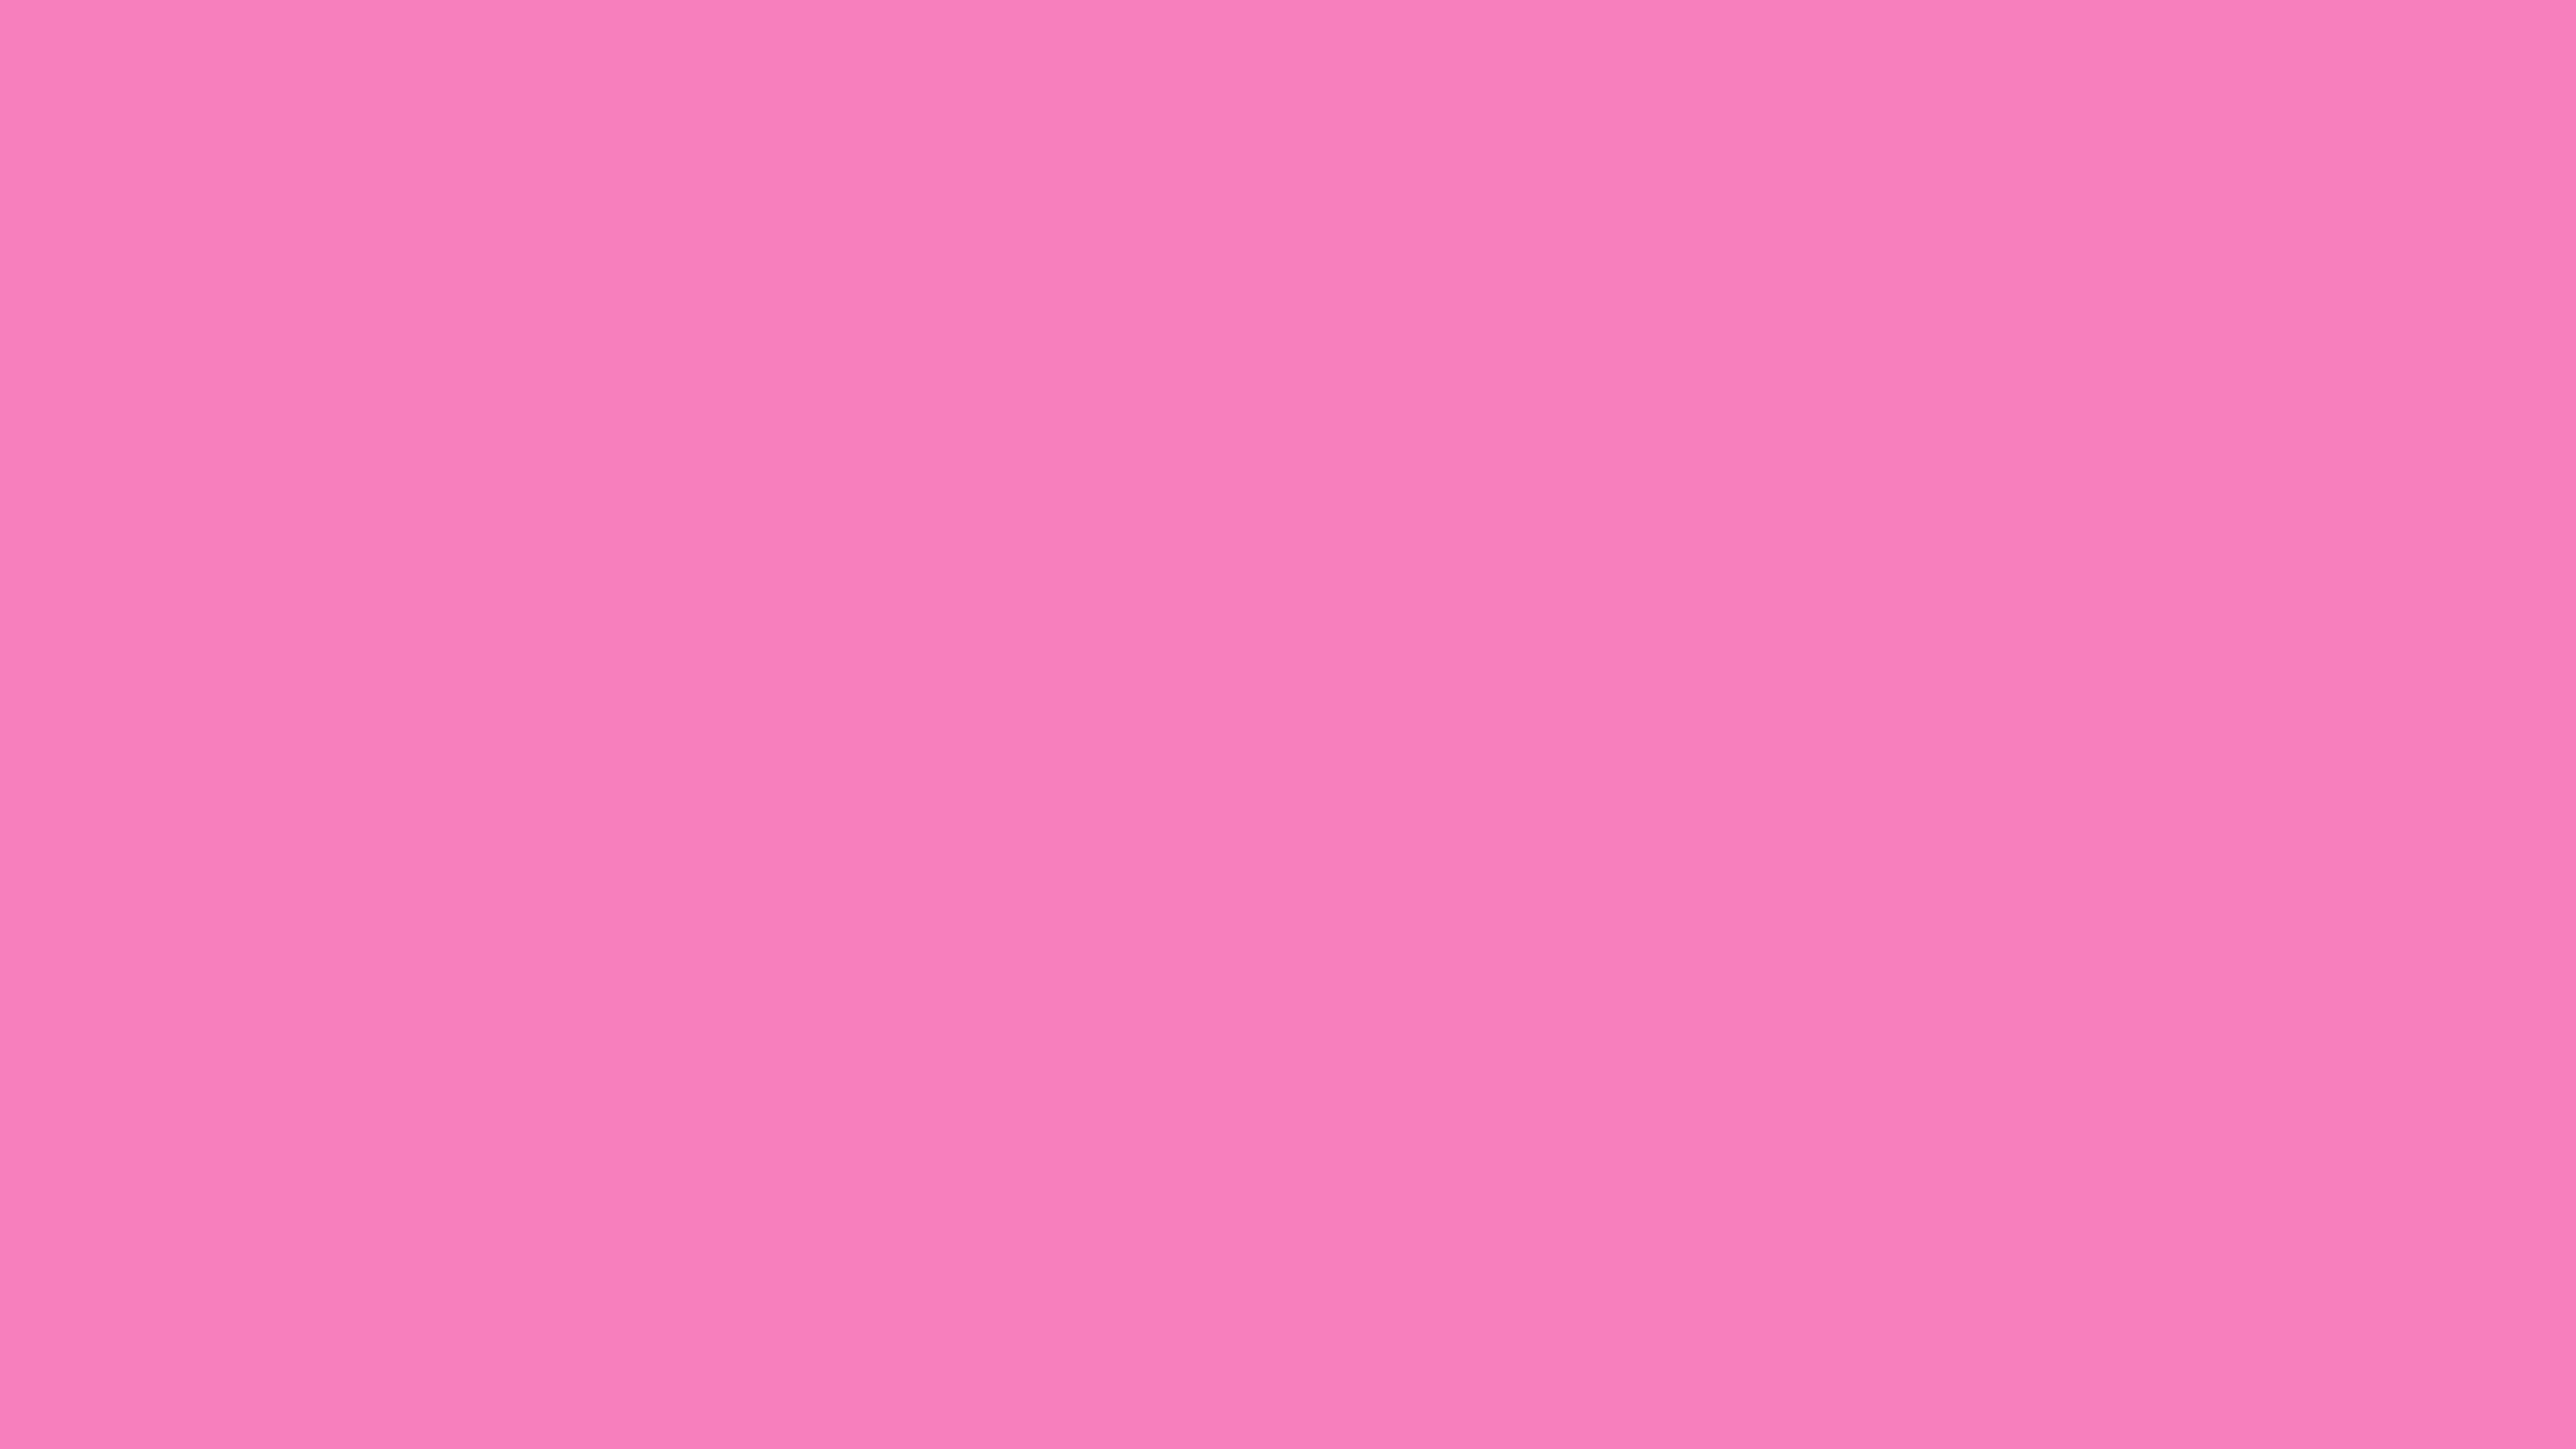 4096x2304 Persian Pink Solid Color Background